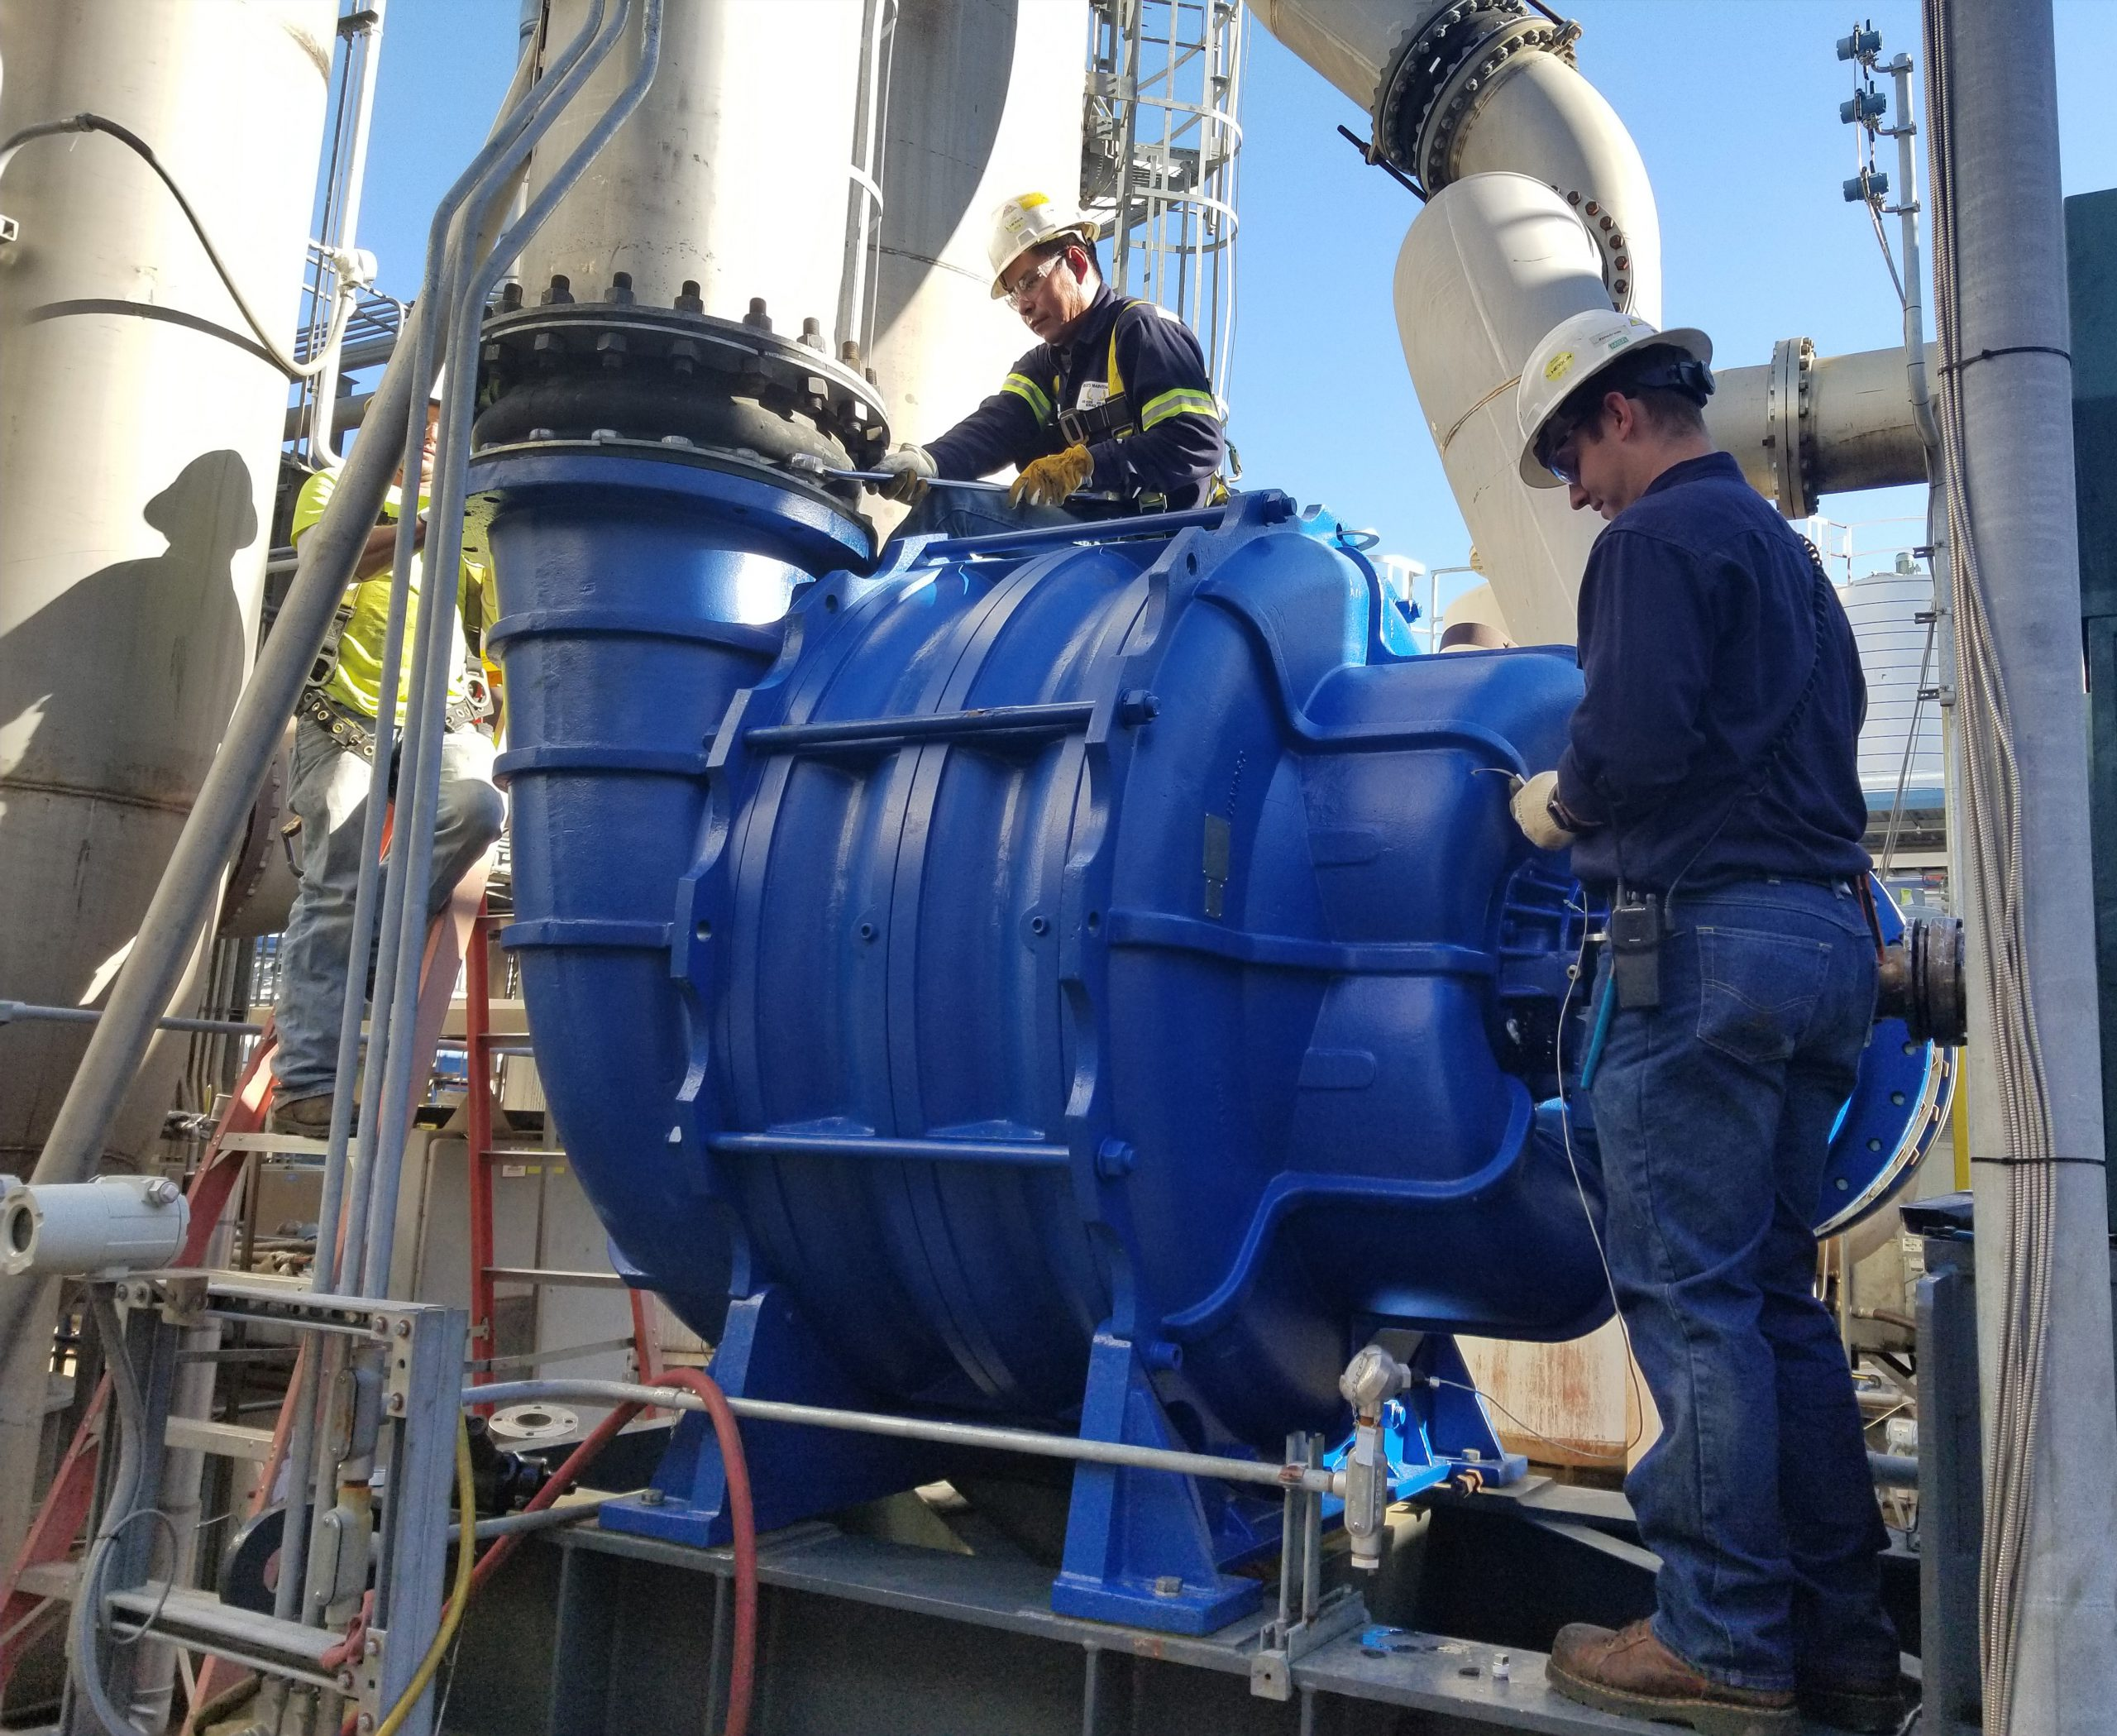 Rent-to-Own Options as well as Brand New Replacement Blowers are available. Blower Packages can include a simple bare blower or complete integrated system to include electric motor, motor starter, PLC control with monitoring and network connections, and other accessory items all packaged to simply connect power and connect piping and its fully automated. We can also build a rental to a specific process gas with the correct materials and protection. Area classifications to Class 1, Div 1 or Zone 0 or ATEX are available.